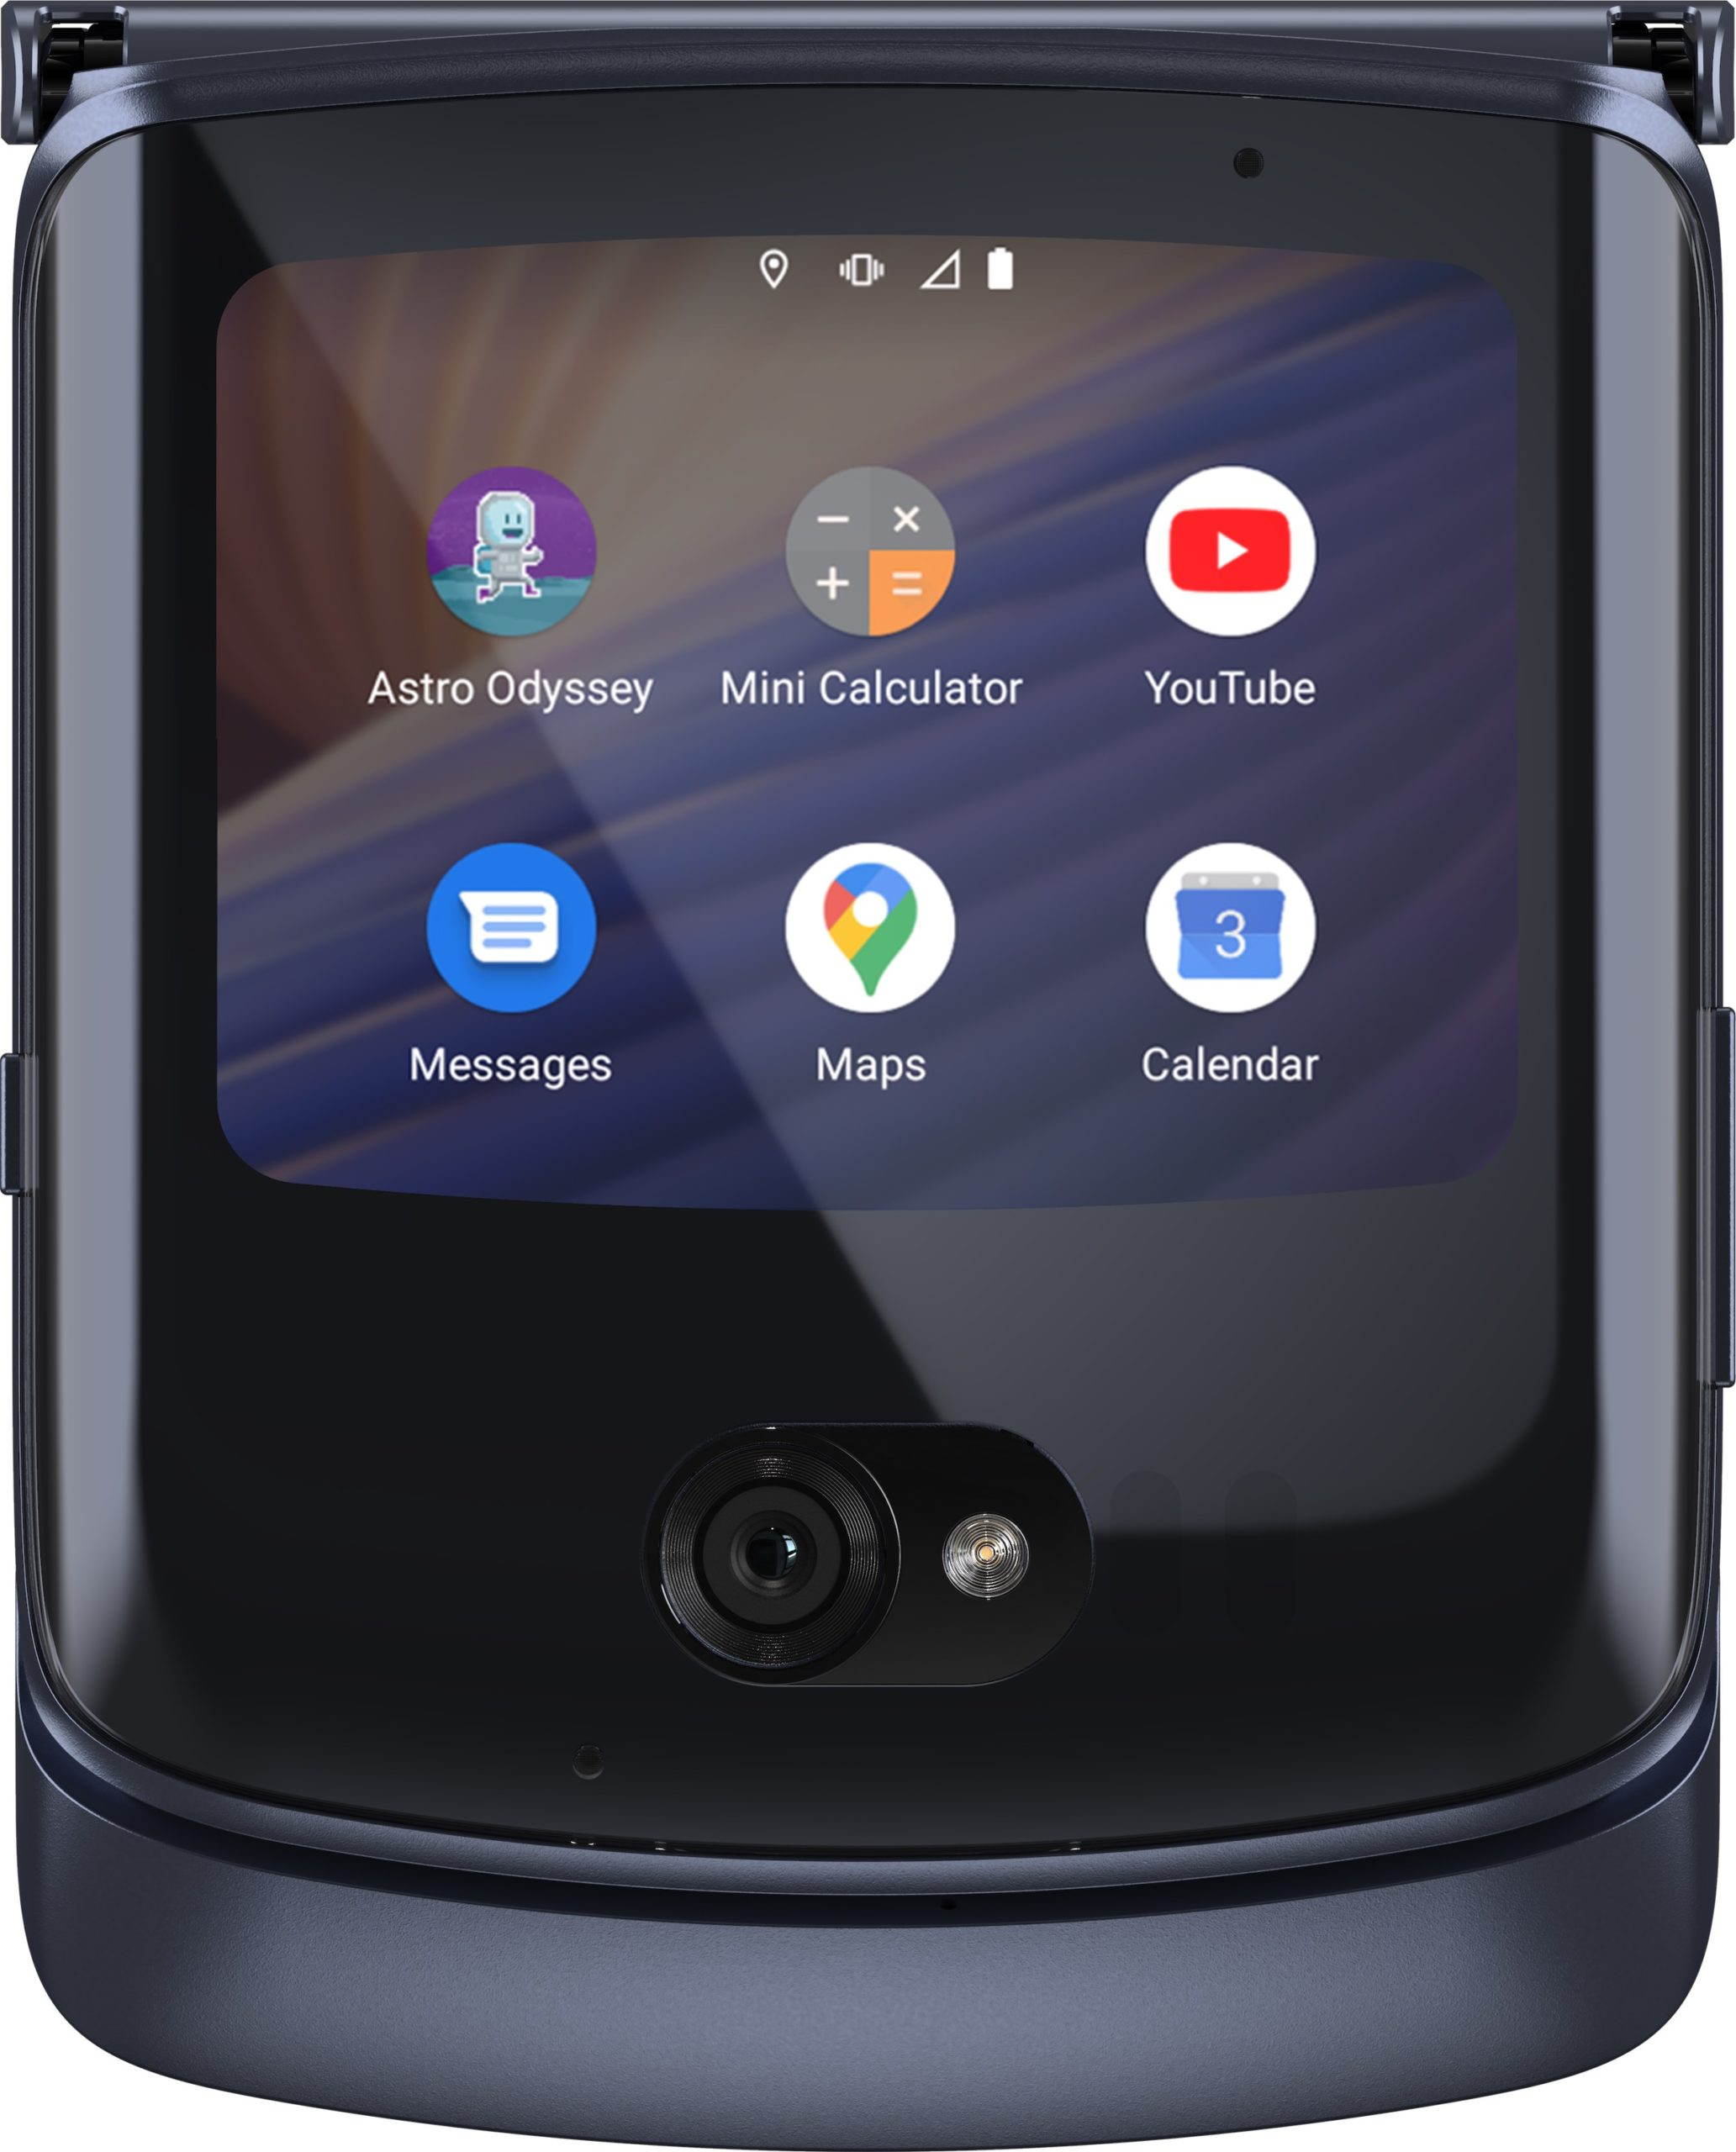 Moto razr 5G offers a redesign and better performance for $1399 13